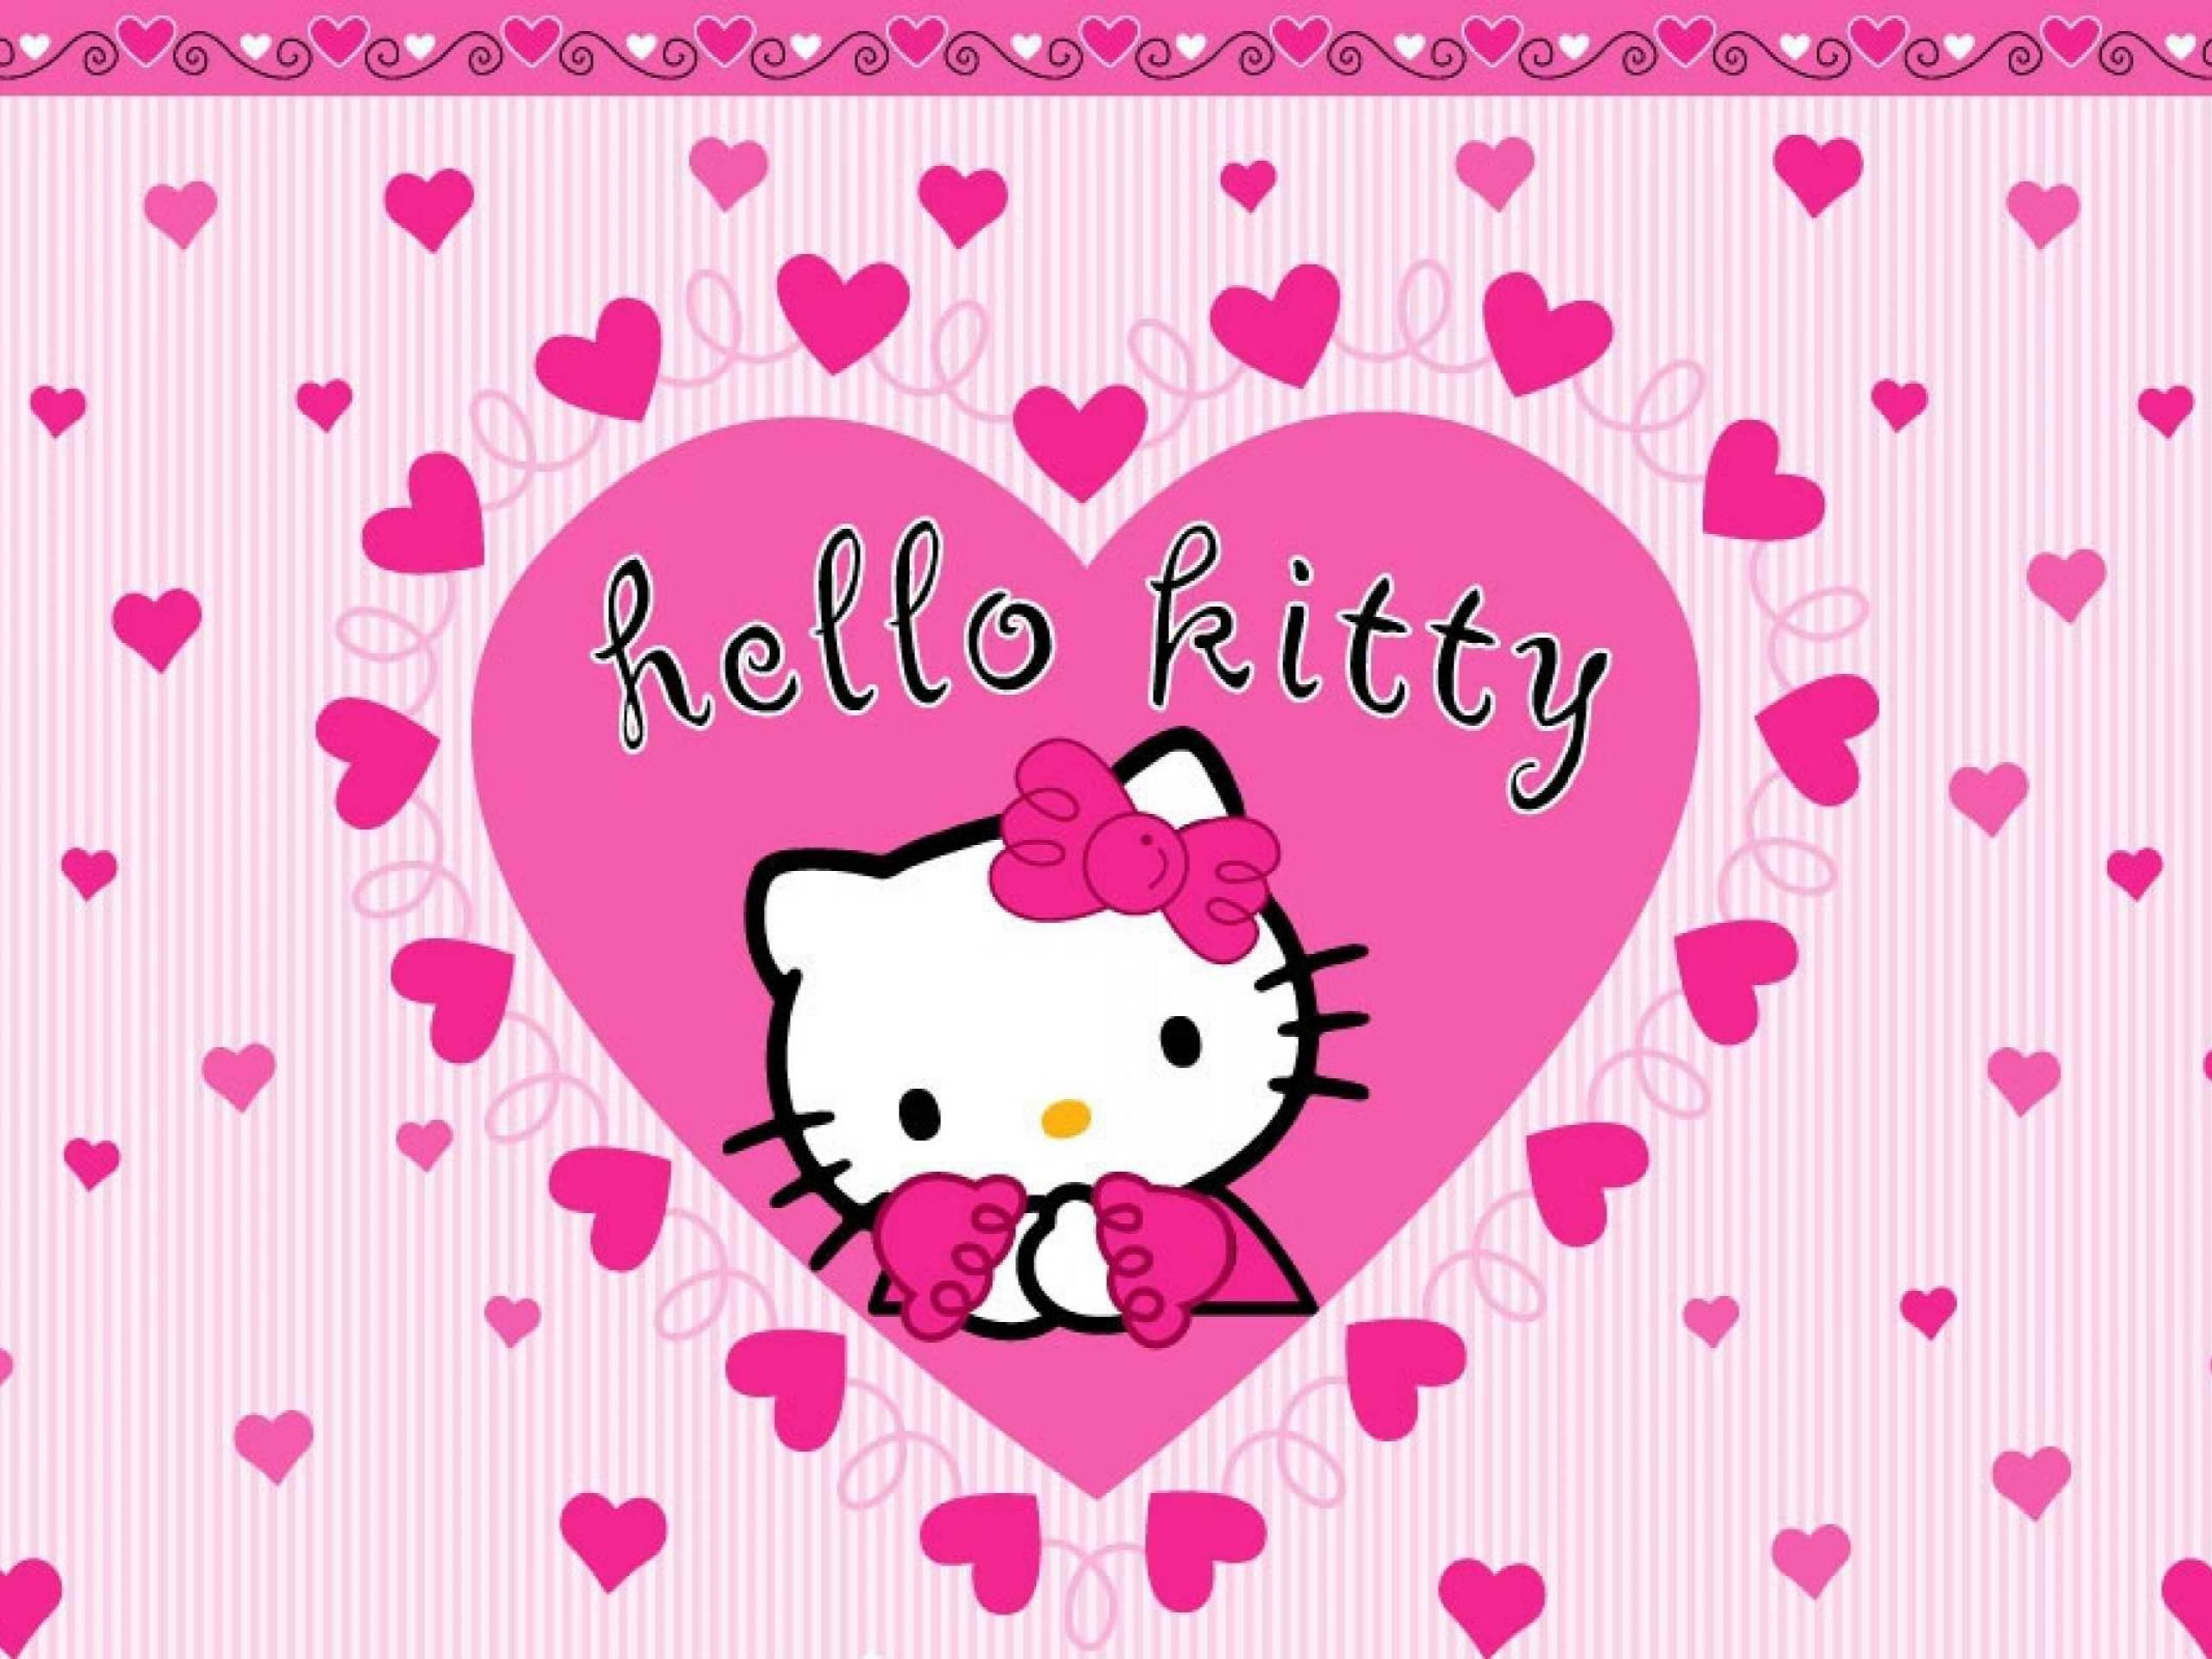 Who android wallpaper pictures of snow free hello kitty wallpaper - Search Results For Cute Free Hello Kitty Wallpapers Adorable Wallpapers